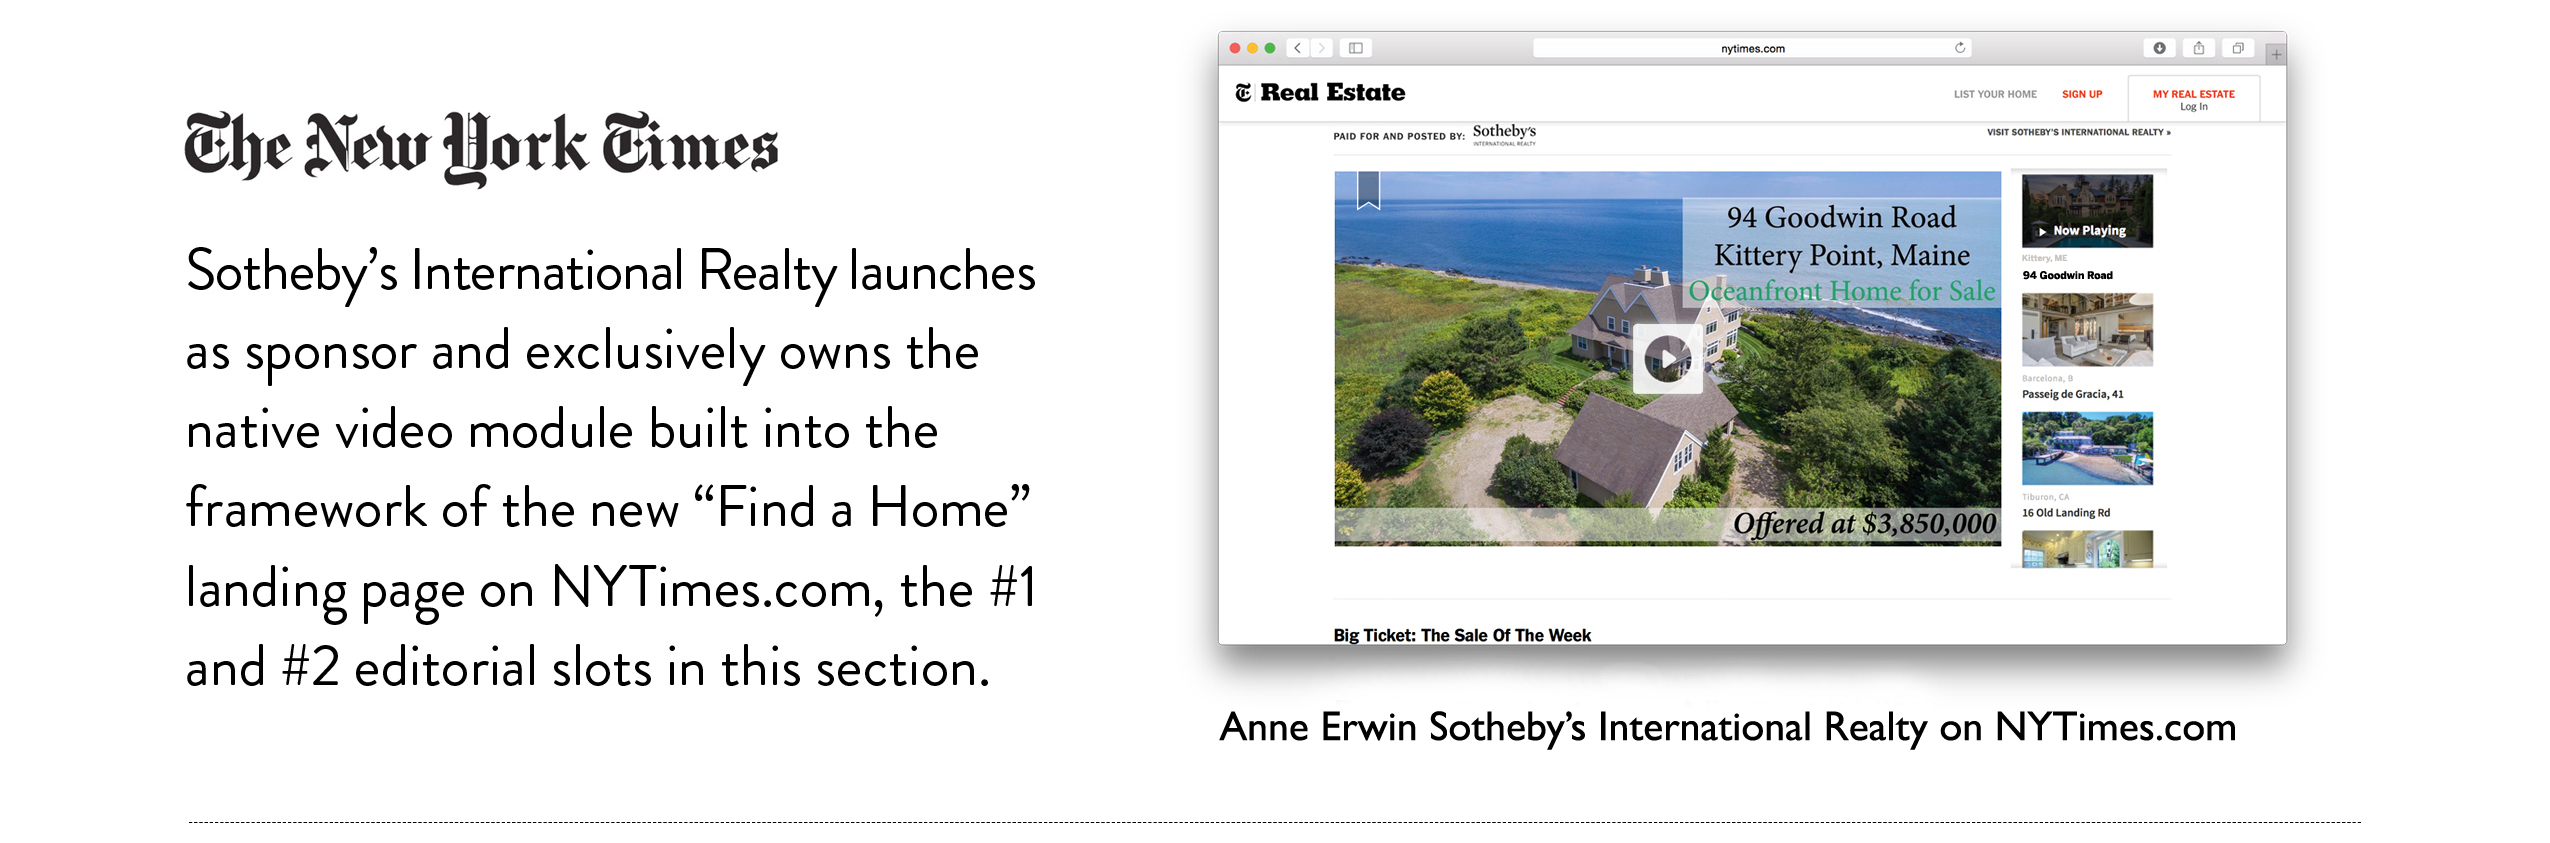 Anne Erwin Sotheby's International Realty's homes appear on New York TImes website